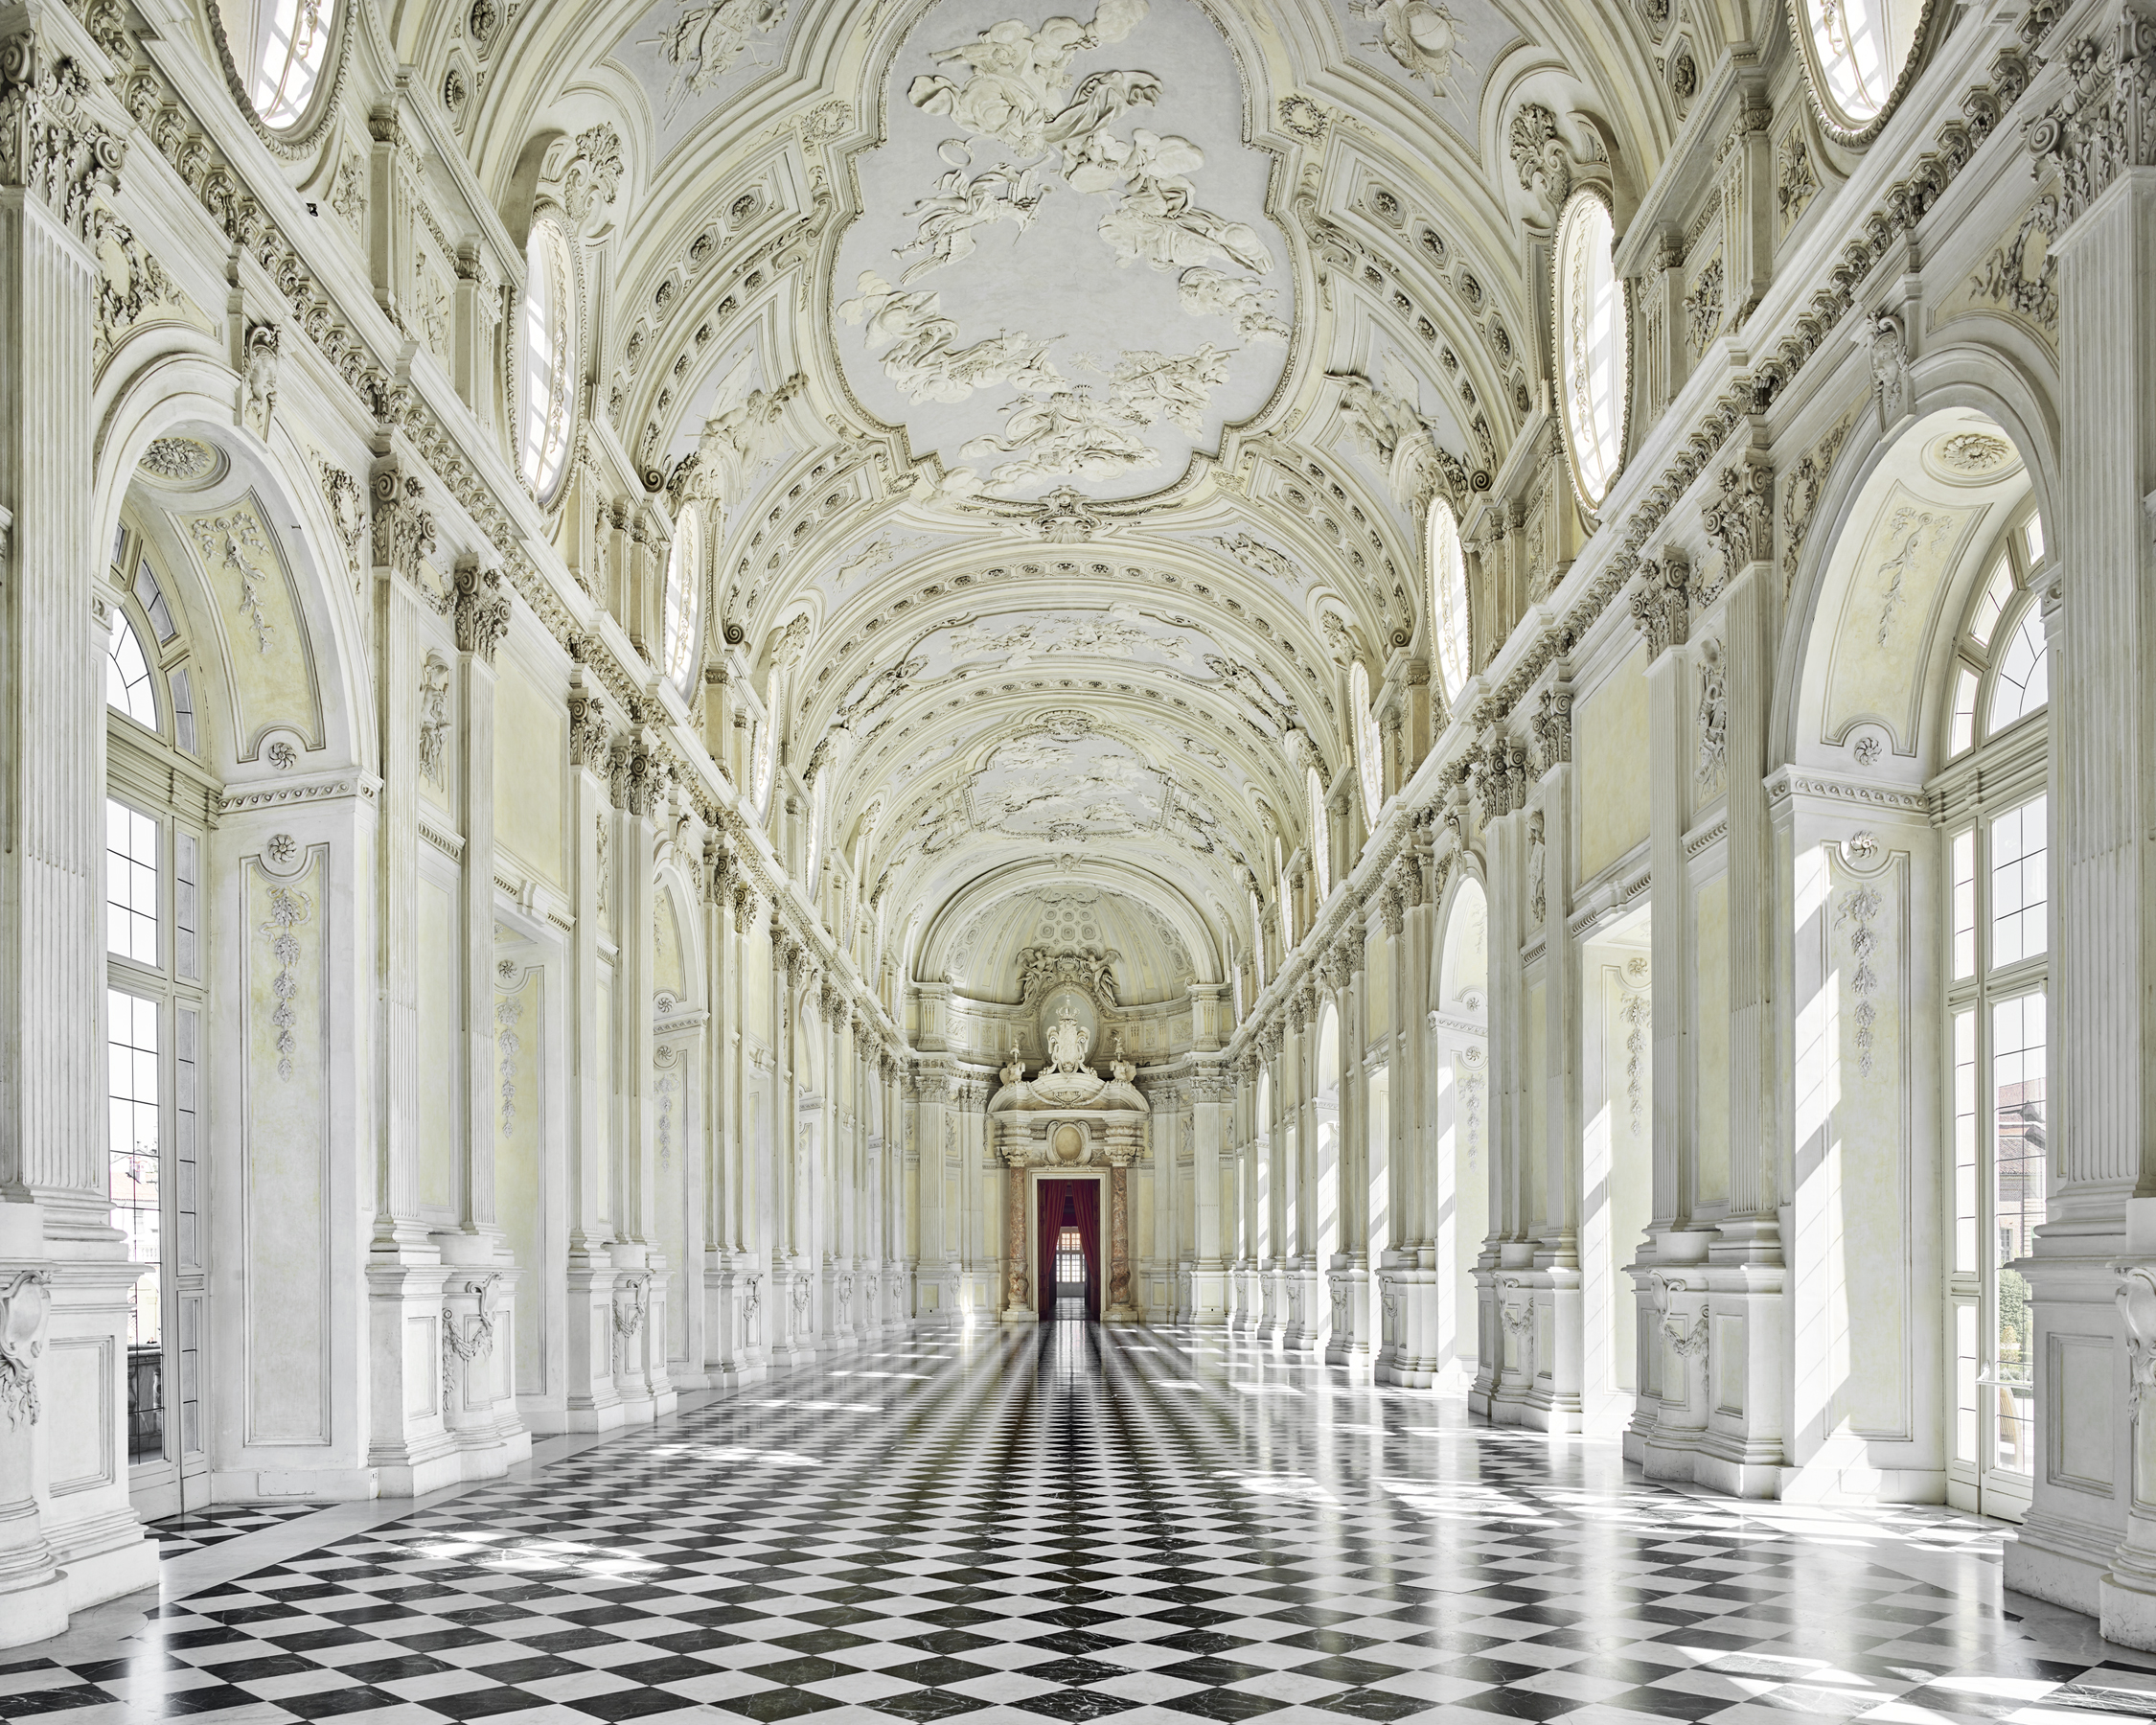 How To Photograph Interiors Reggia Di Venaria Reale Torino Italy By David Burdeny